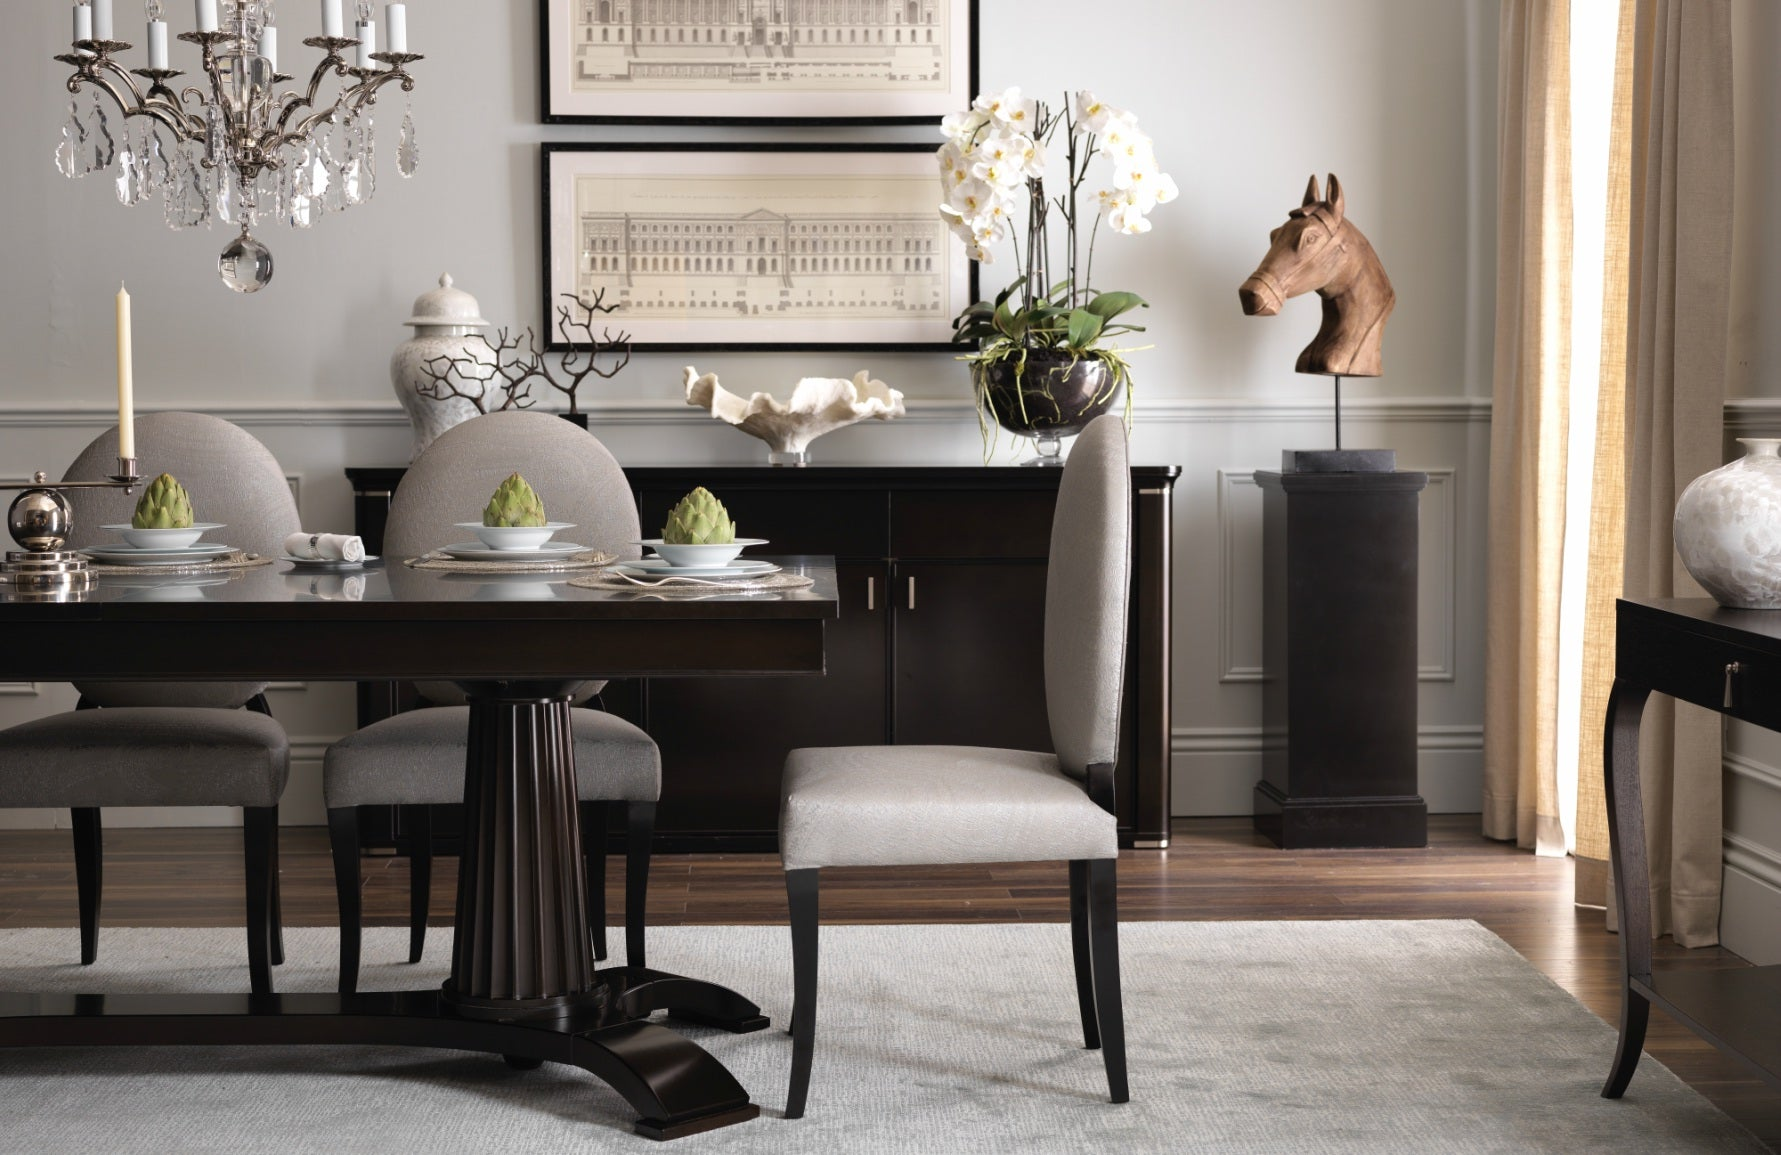 Selva | Behind The Brand | Selva Dining Table | The Luxurist | LuxDeco.com